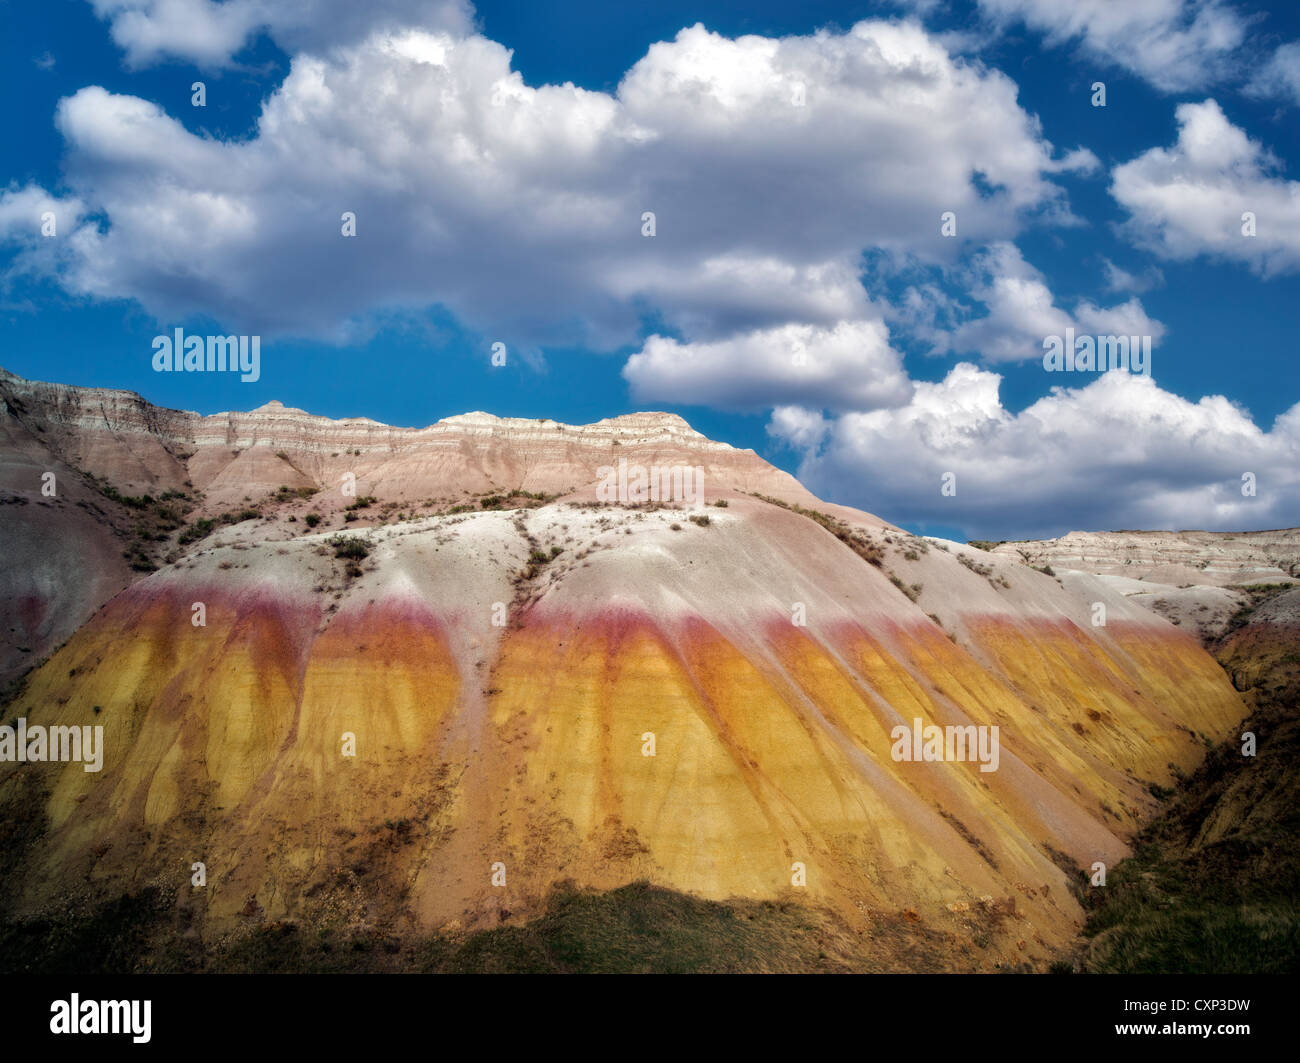 Yellow Mounds with clouds. Badlands National Park, South Dakota. - Stock Image